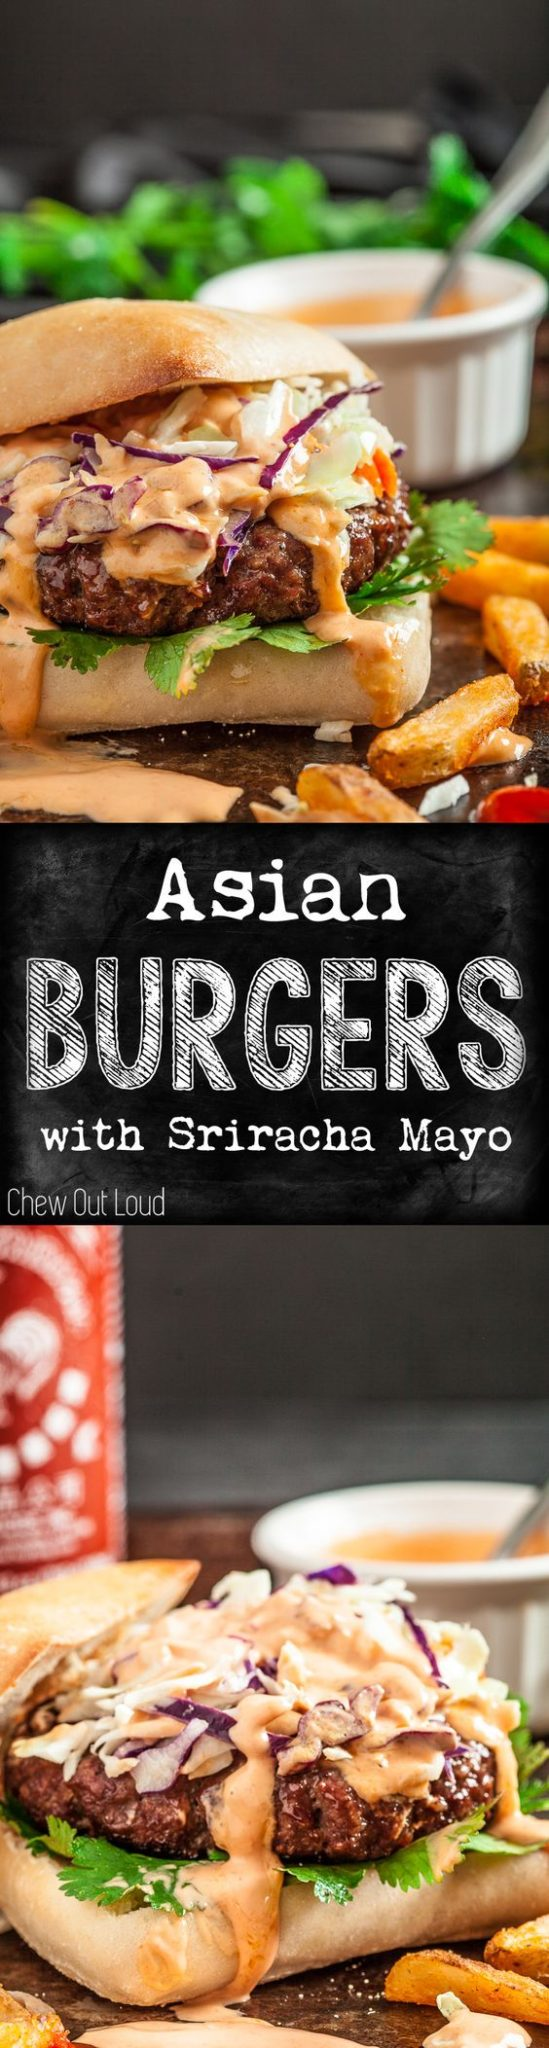 Hamburger Recipes - The BEST Ground Beef Asian Burgers ready for the grill with Sriracha Mayo - Recipe via Chew Out Loud